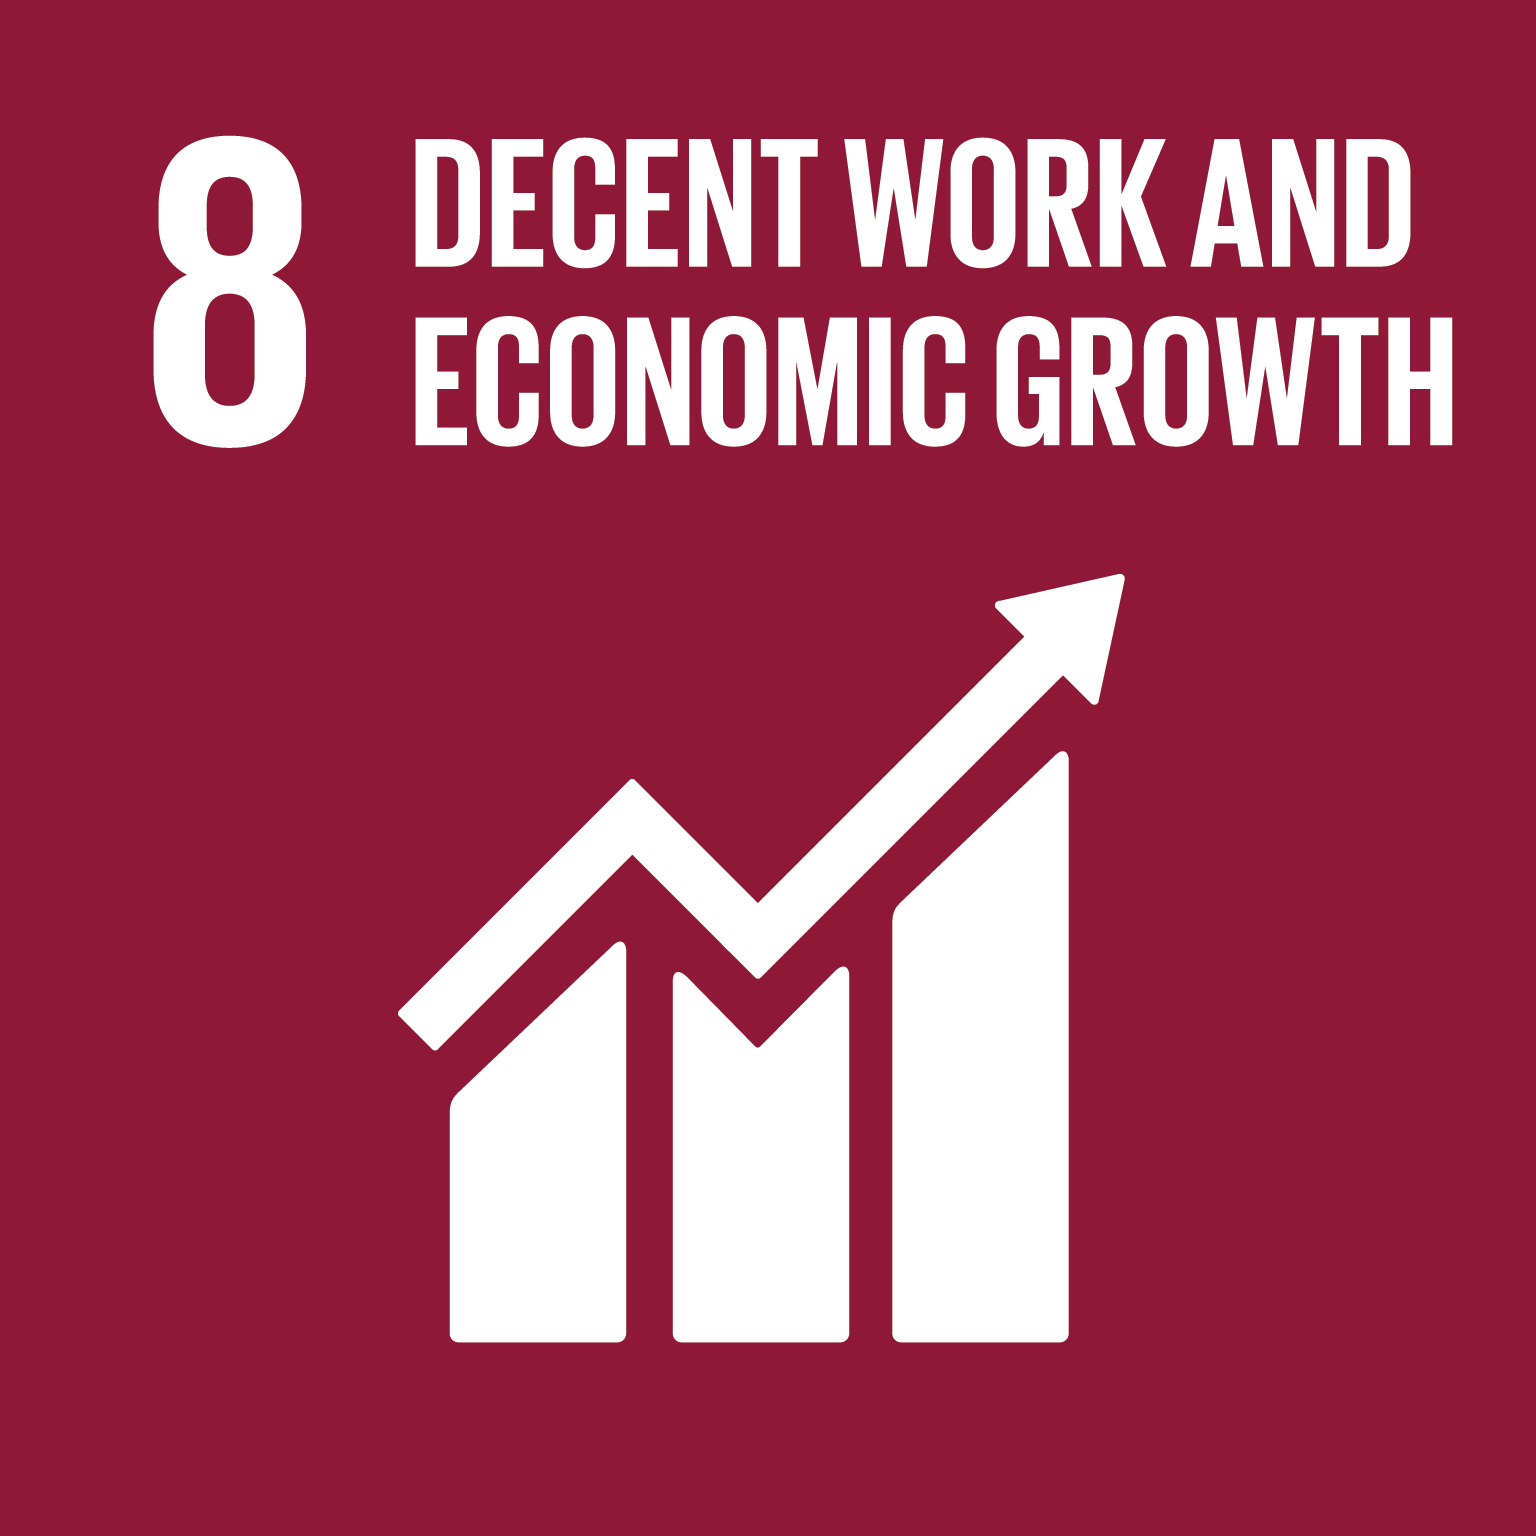 Promote inclusive and sustainable economic growth, employment and decent work for all